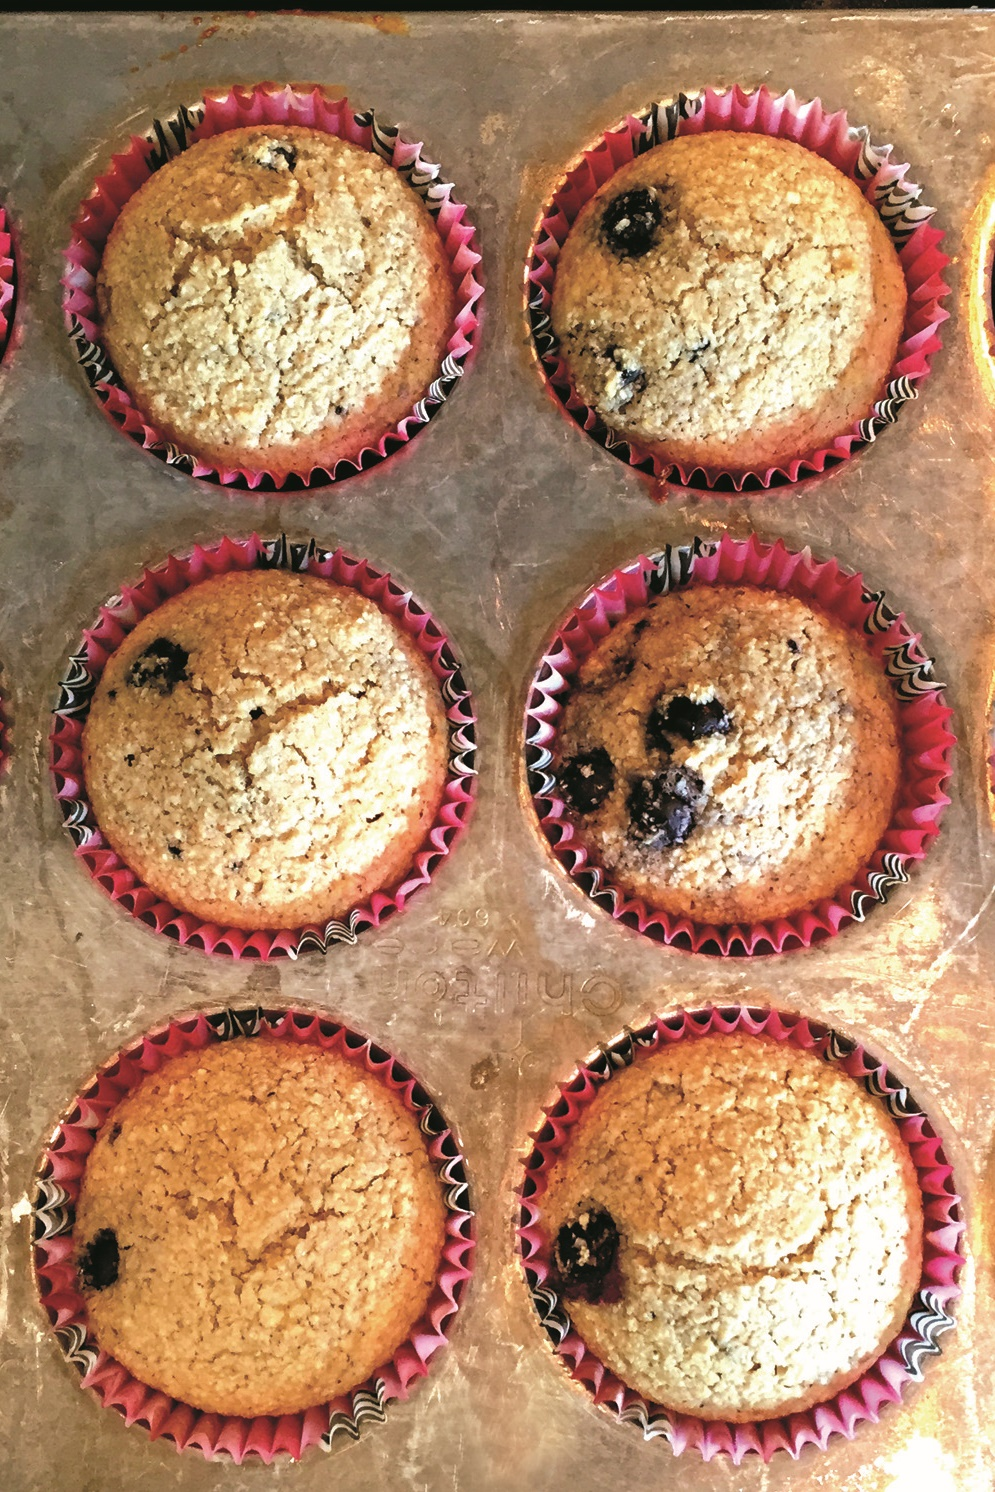 Blueberry Oat Bran Muffins Recipe - naturally gluten-free, dairy-free and low fat